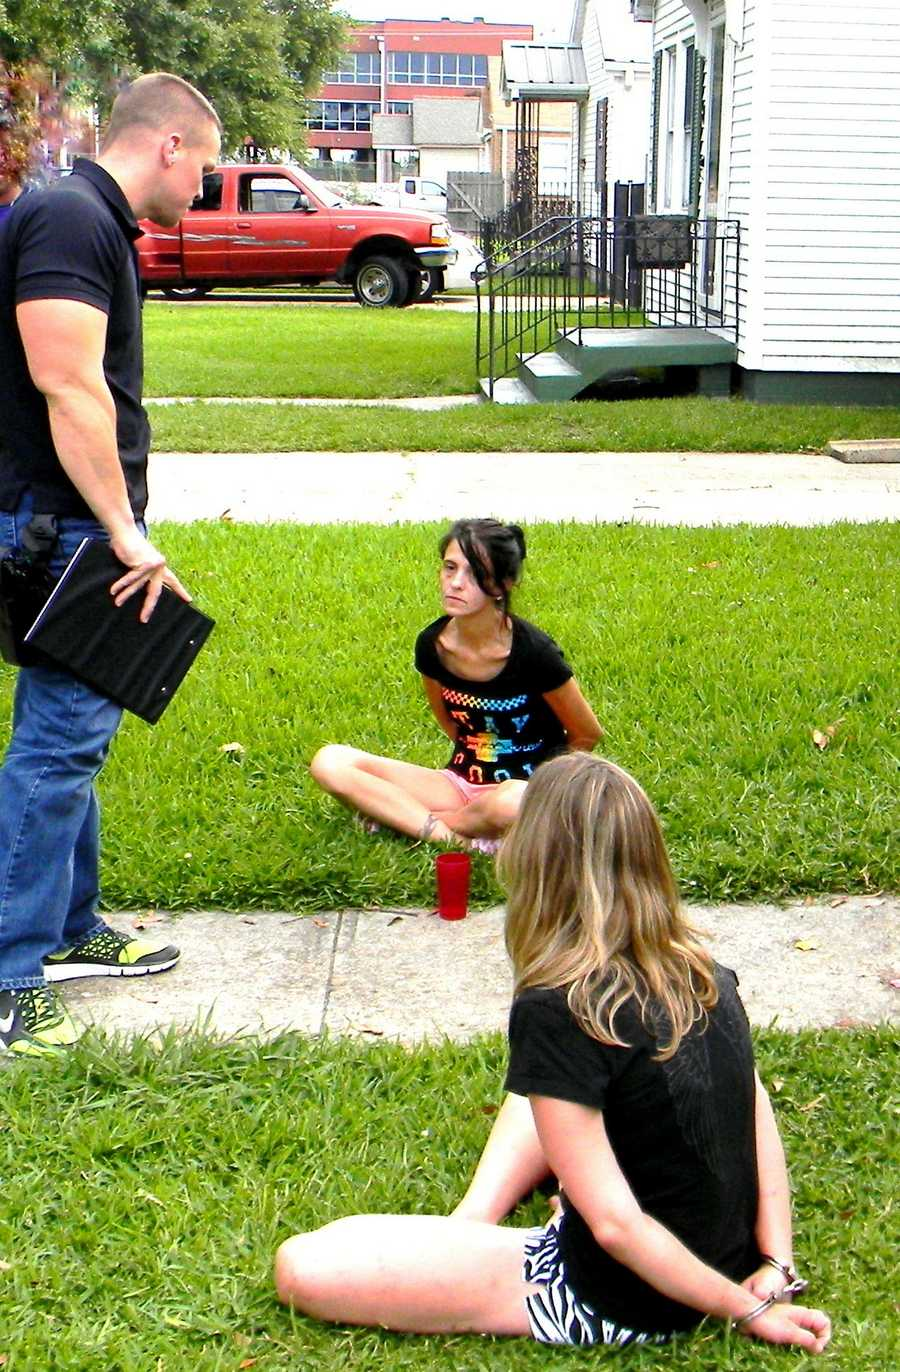 Narcotics Agent Daniel Bostic talks with the suspects on the ground, Rachel Butler in the foreground and Melissa Huy in the background.